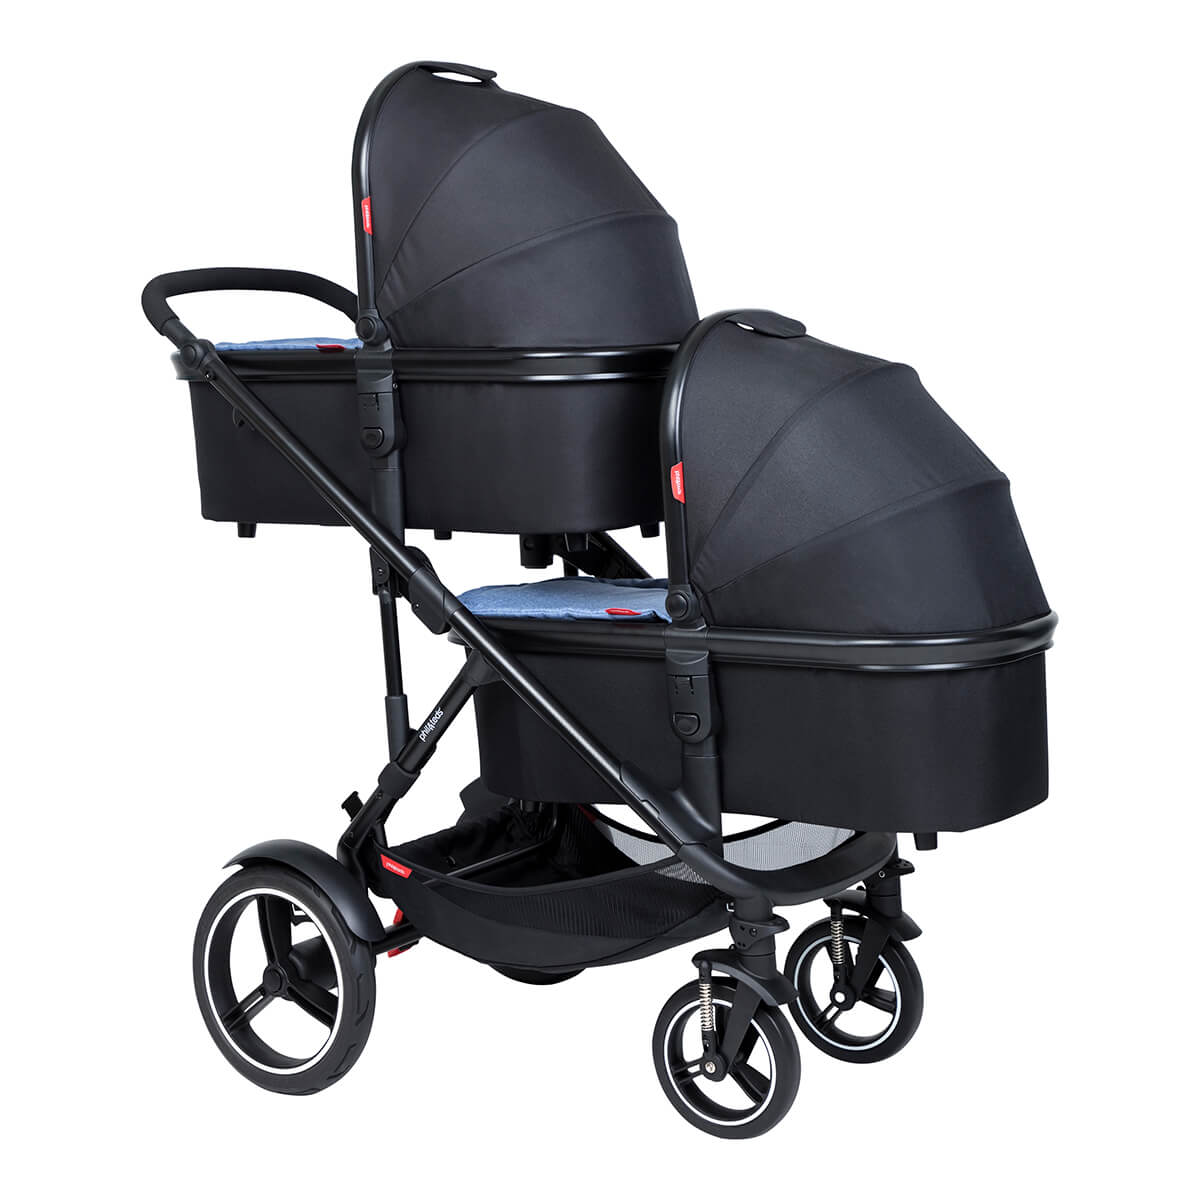 https://cdn.accentuate.io/4509529178200/19272668414040/philteds-voyager-inline-buggy-with-double-snug-carrycots-v1626484764588.jpg?1200x1200